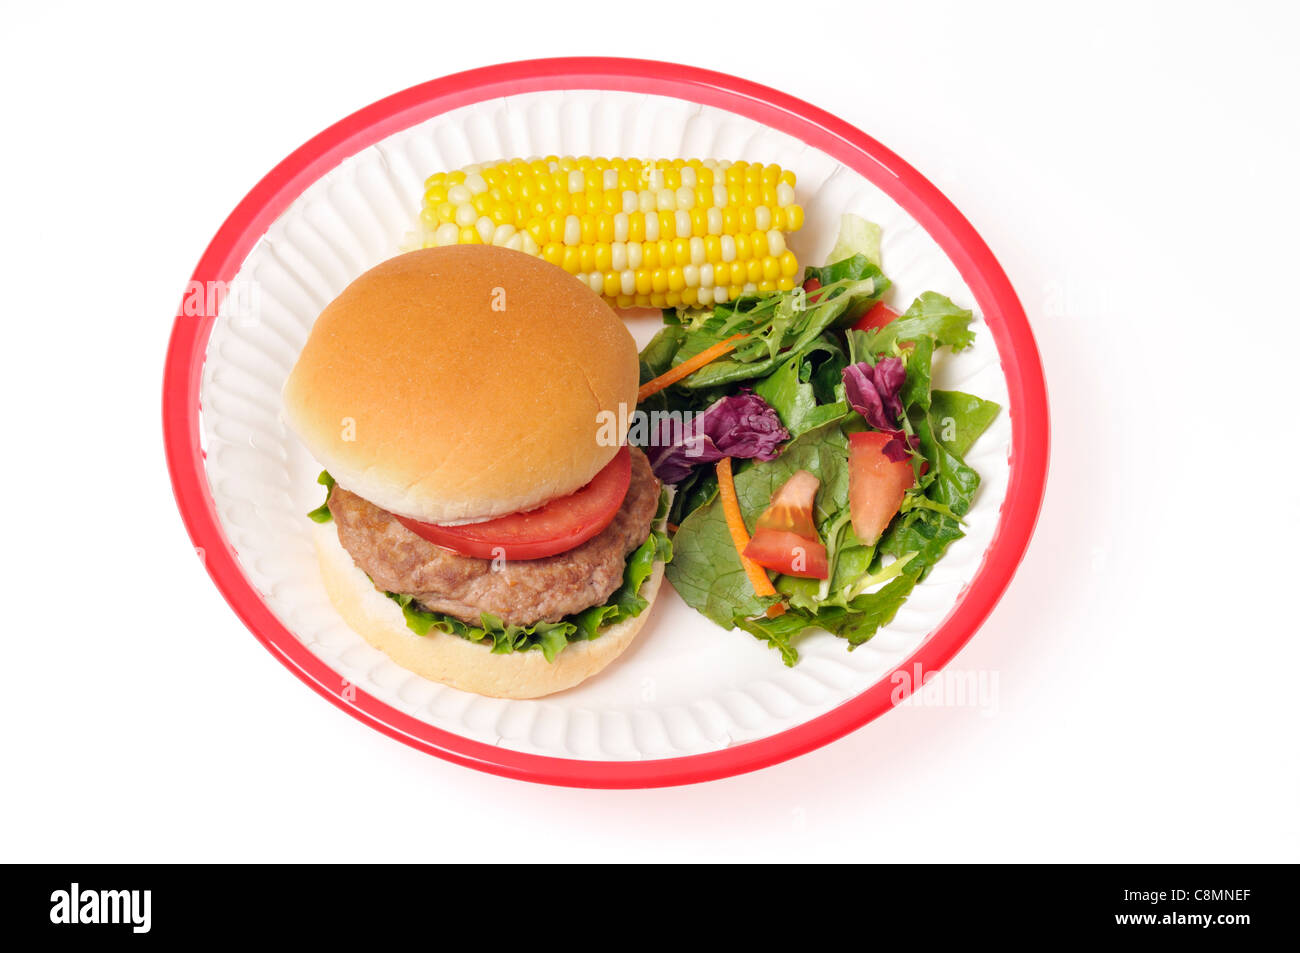 Turkey burger with lettuce and tomato in bread roll in red retro plastic basket with corn on the cob and salad on - Stock Image